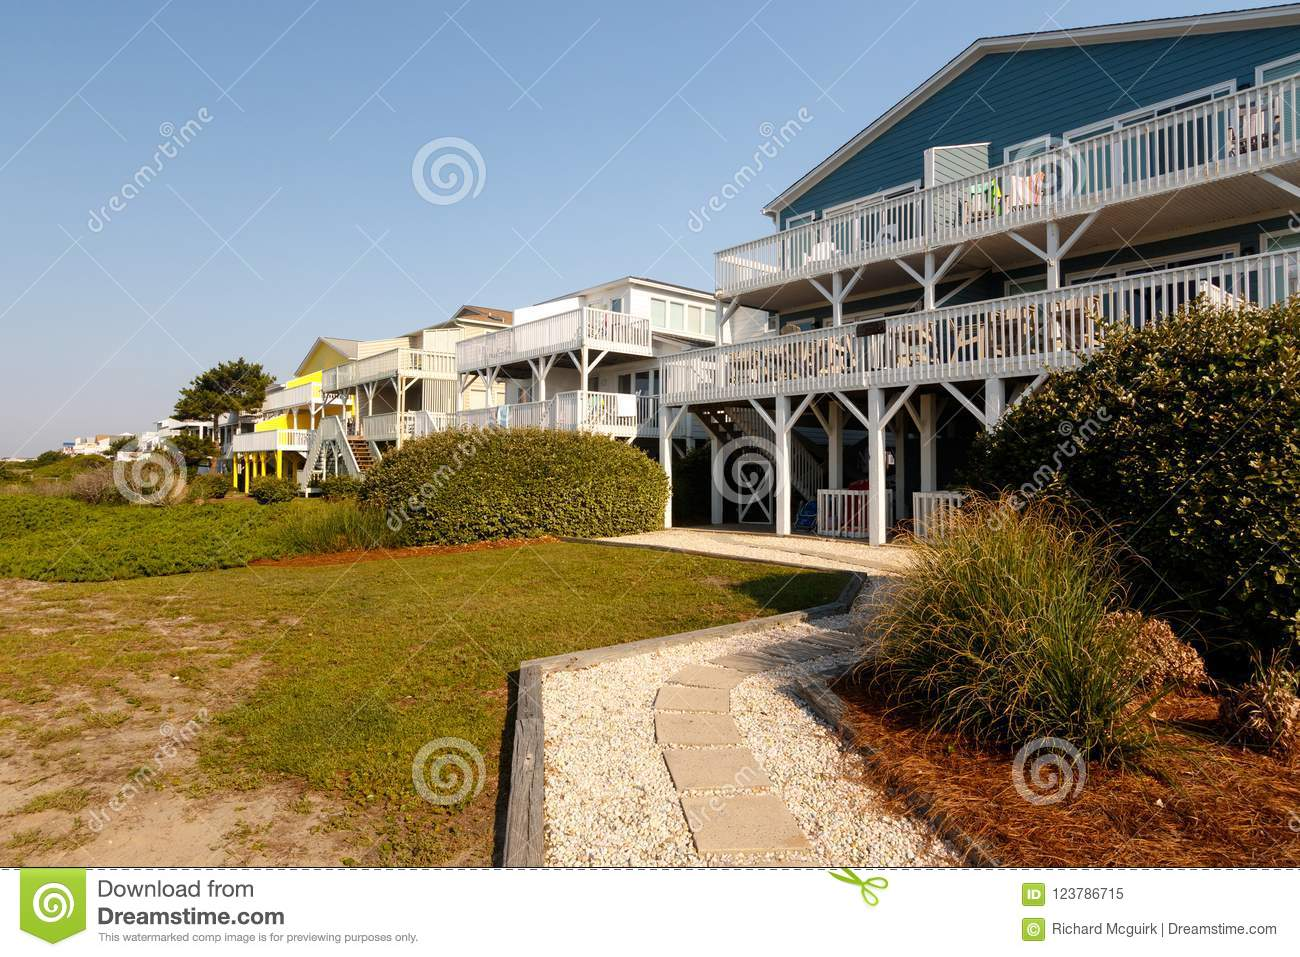 Homes For Rent On The Atlantic Ocean Stock Image - Image of